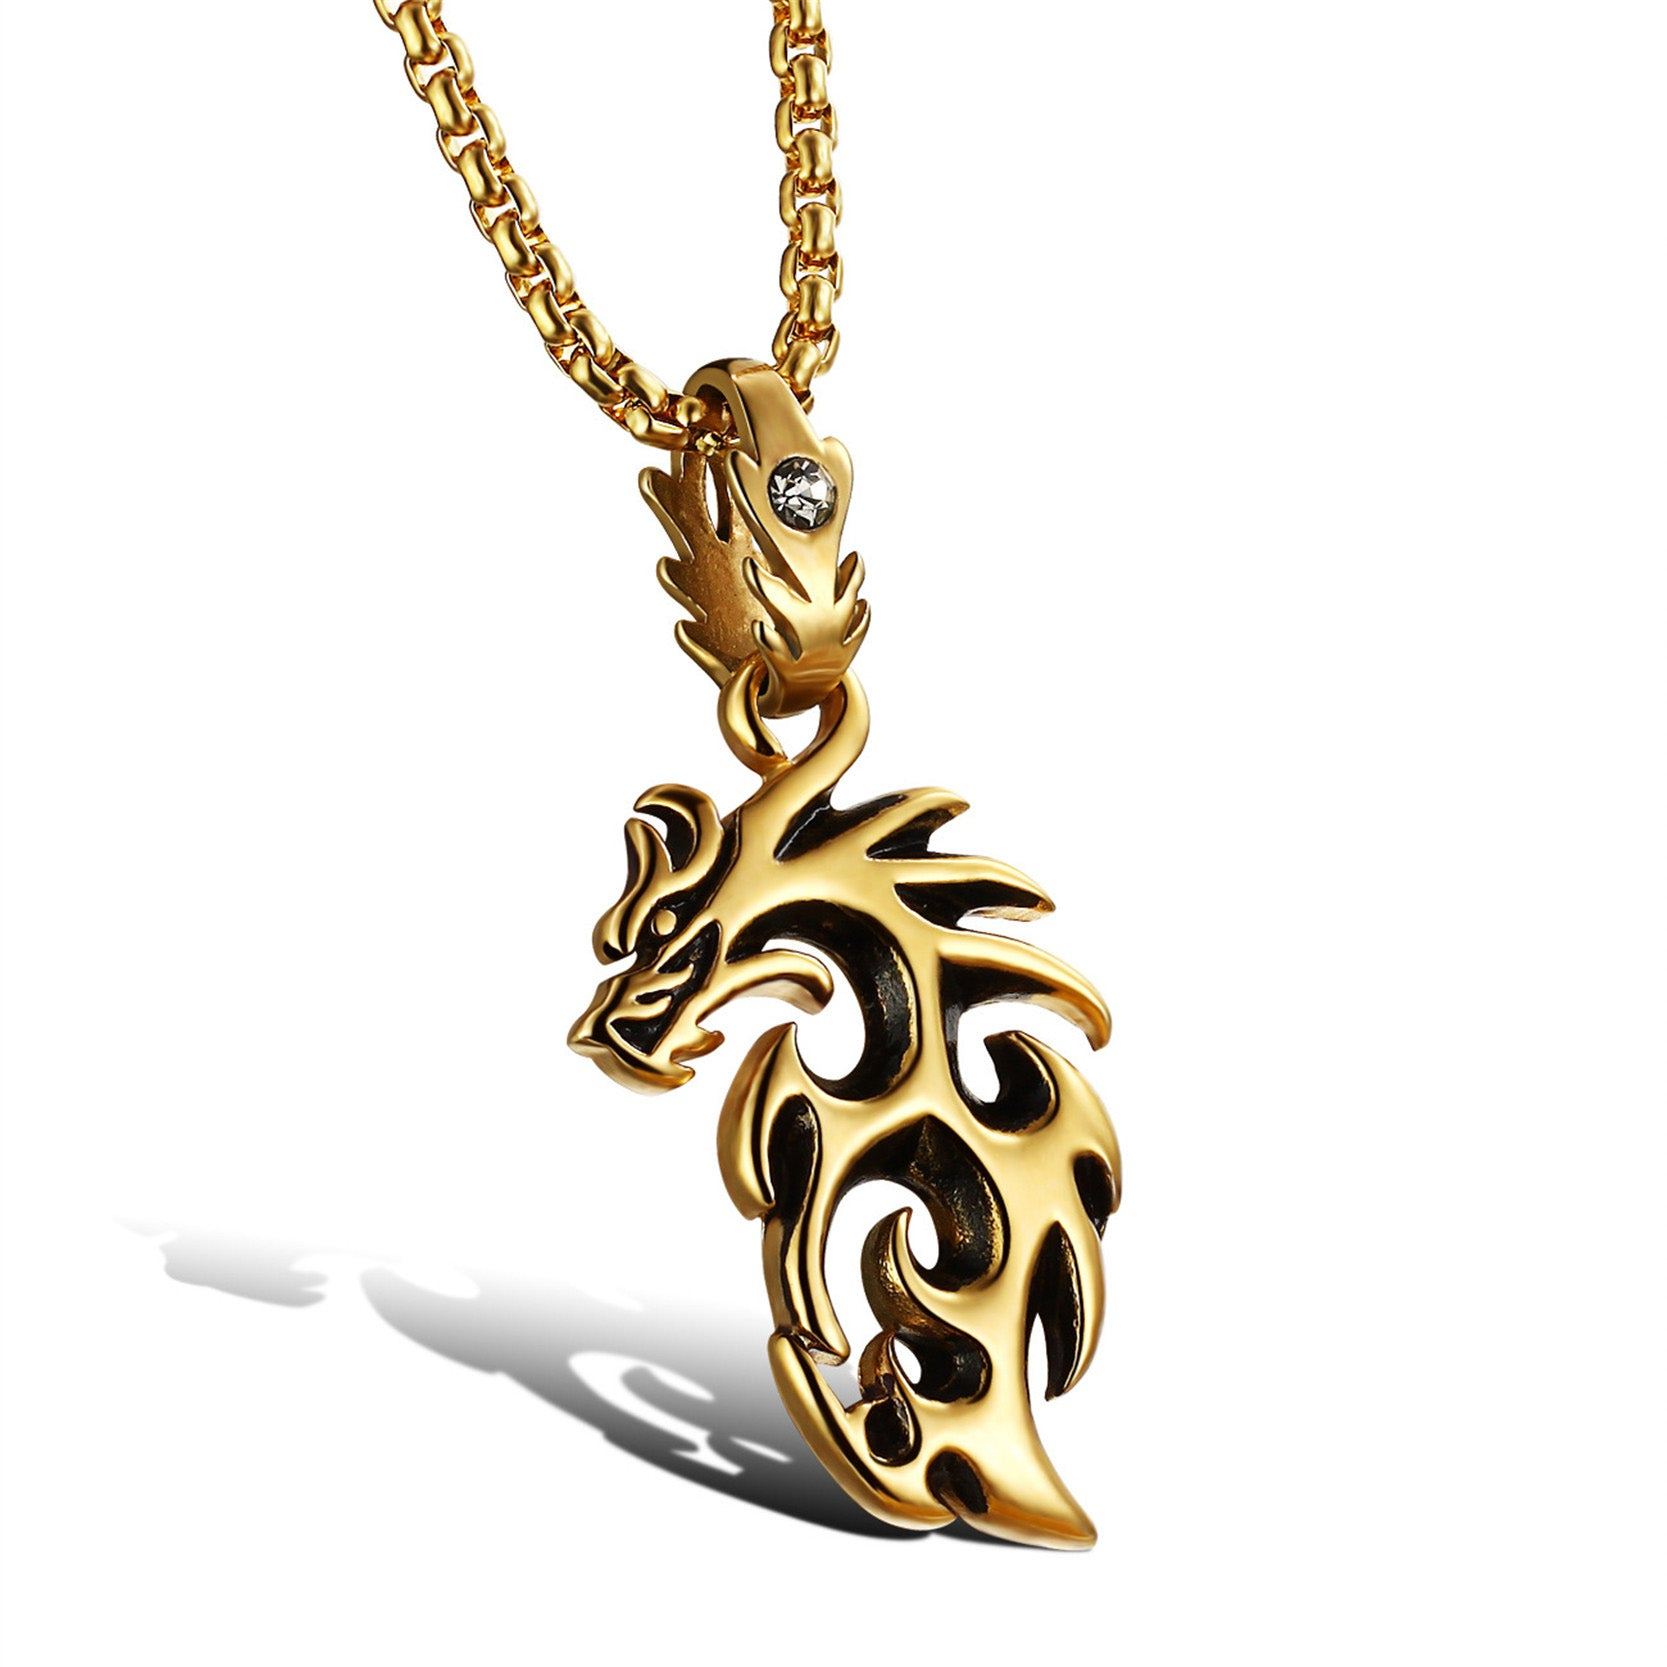 BEAUTIFUL GOLD OR SILVER COLORED DRAGON NECKLACES Dragon Valuables